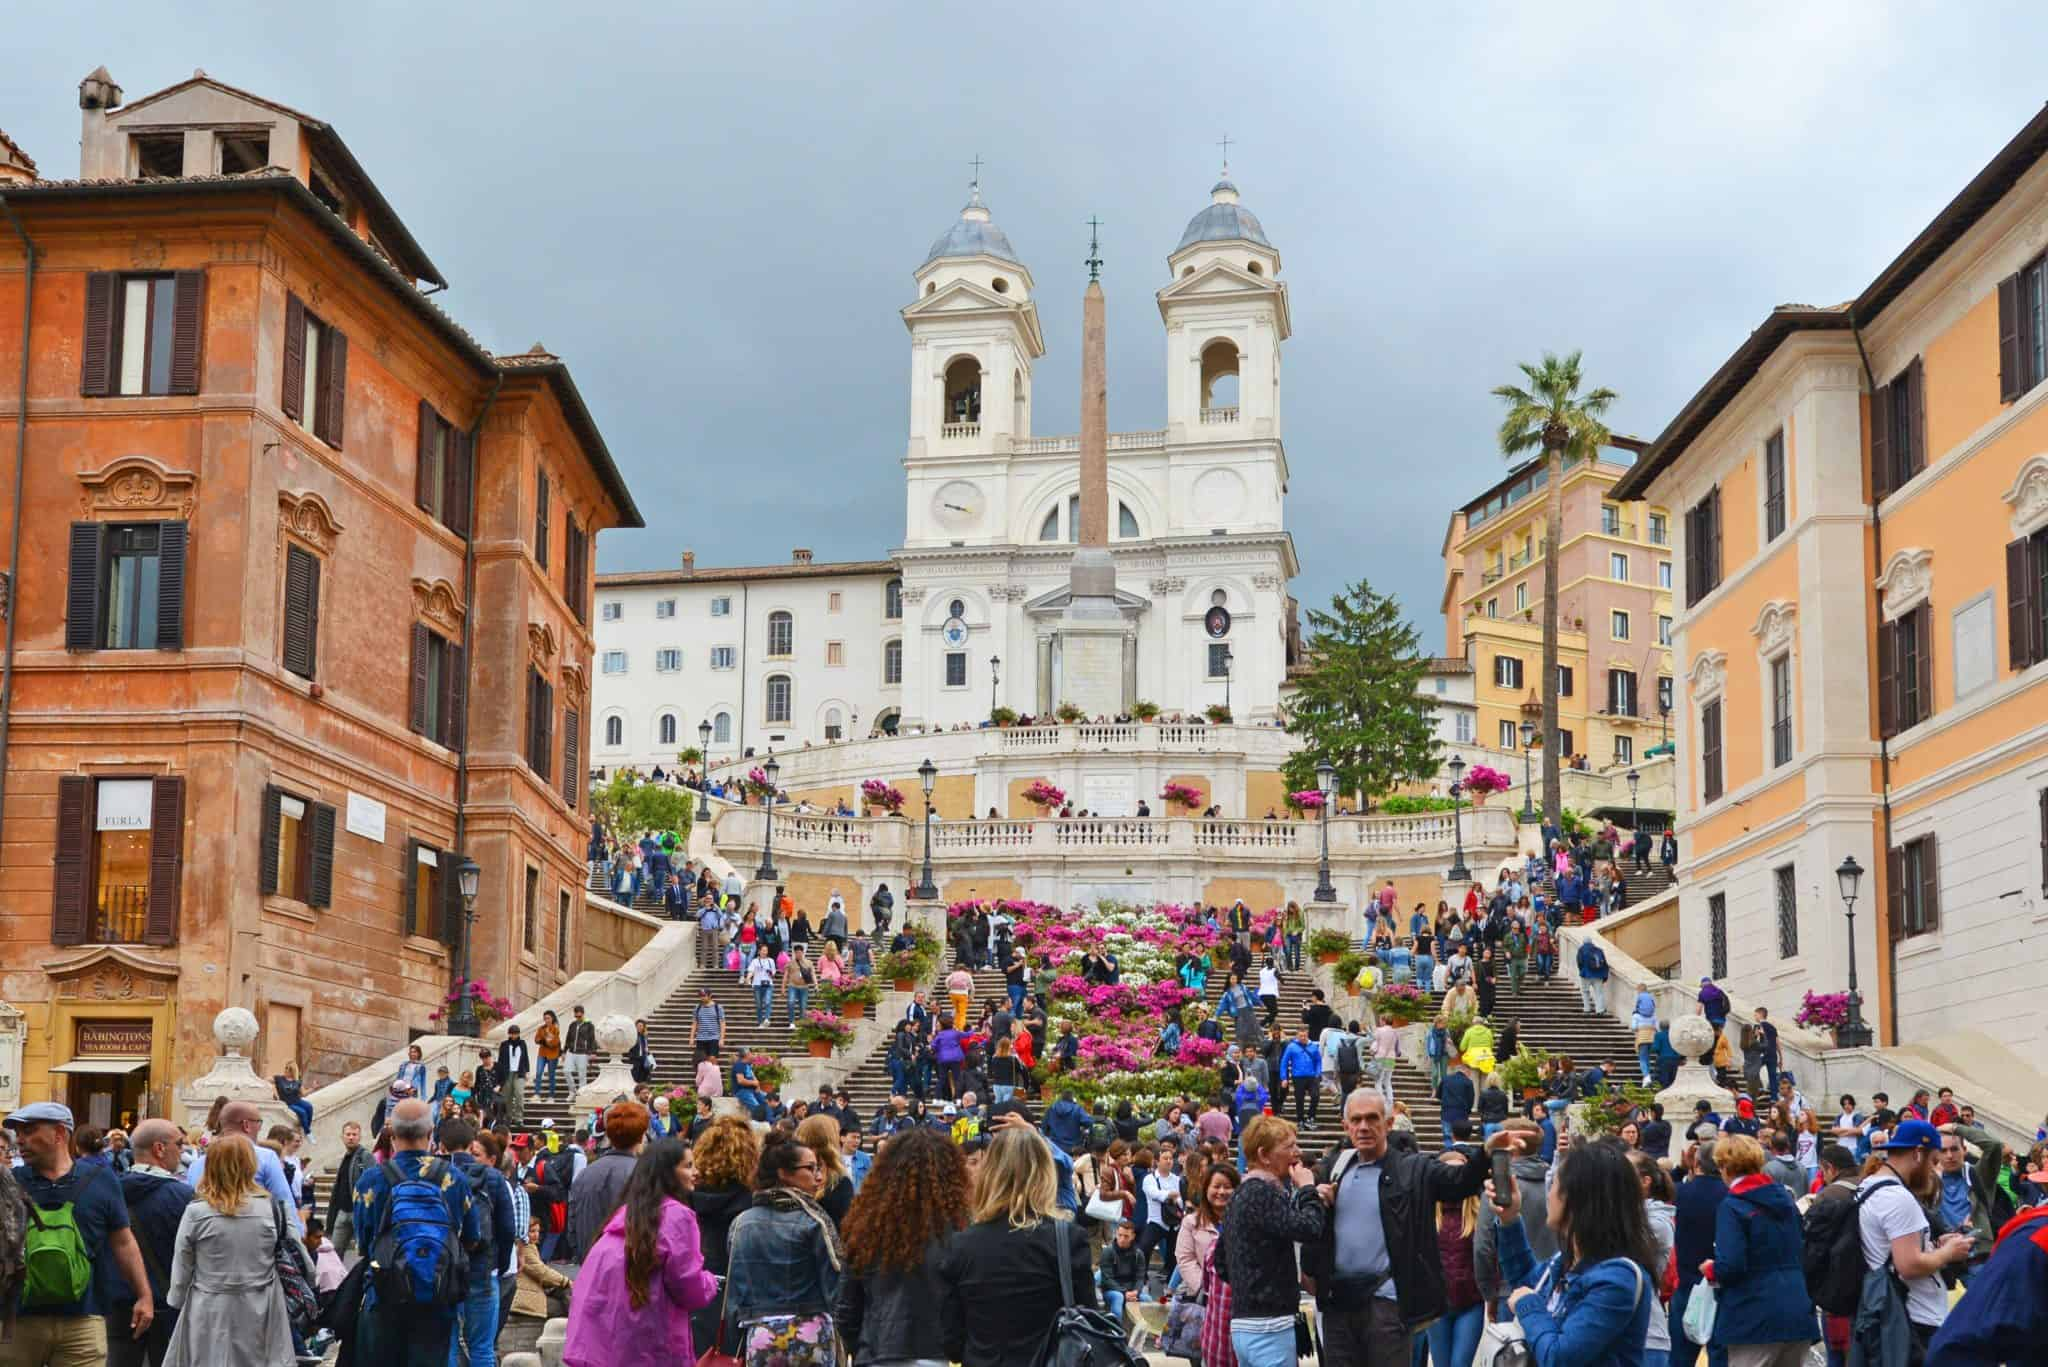 Spanish Steps: Designed in the early 1700's, but not built until 1723-1725, the Spanish Steps are the widest stairway in Europe. It was built in order to link the the Trinità dei Monti church that was under the patronage of the king of France, with the Spanish square below.